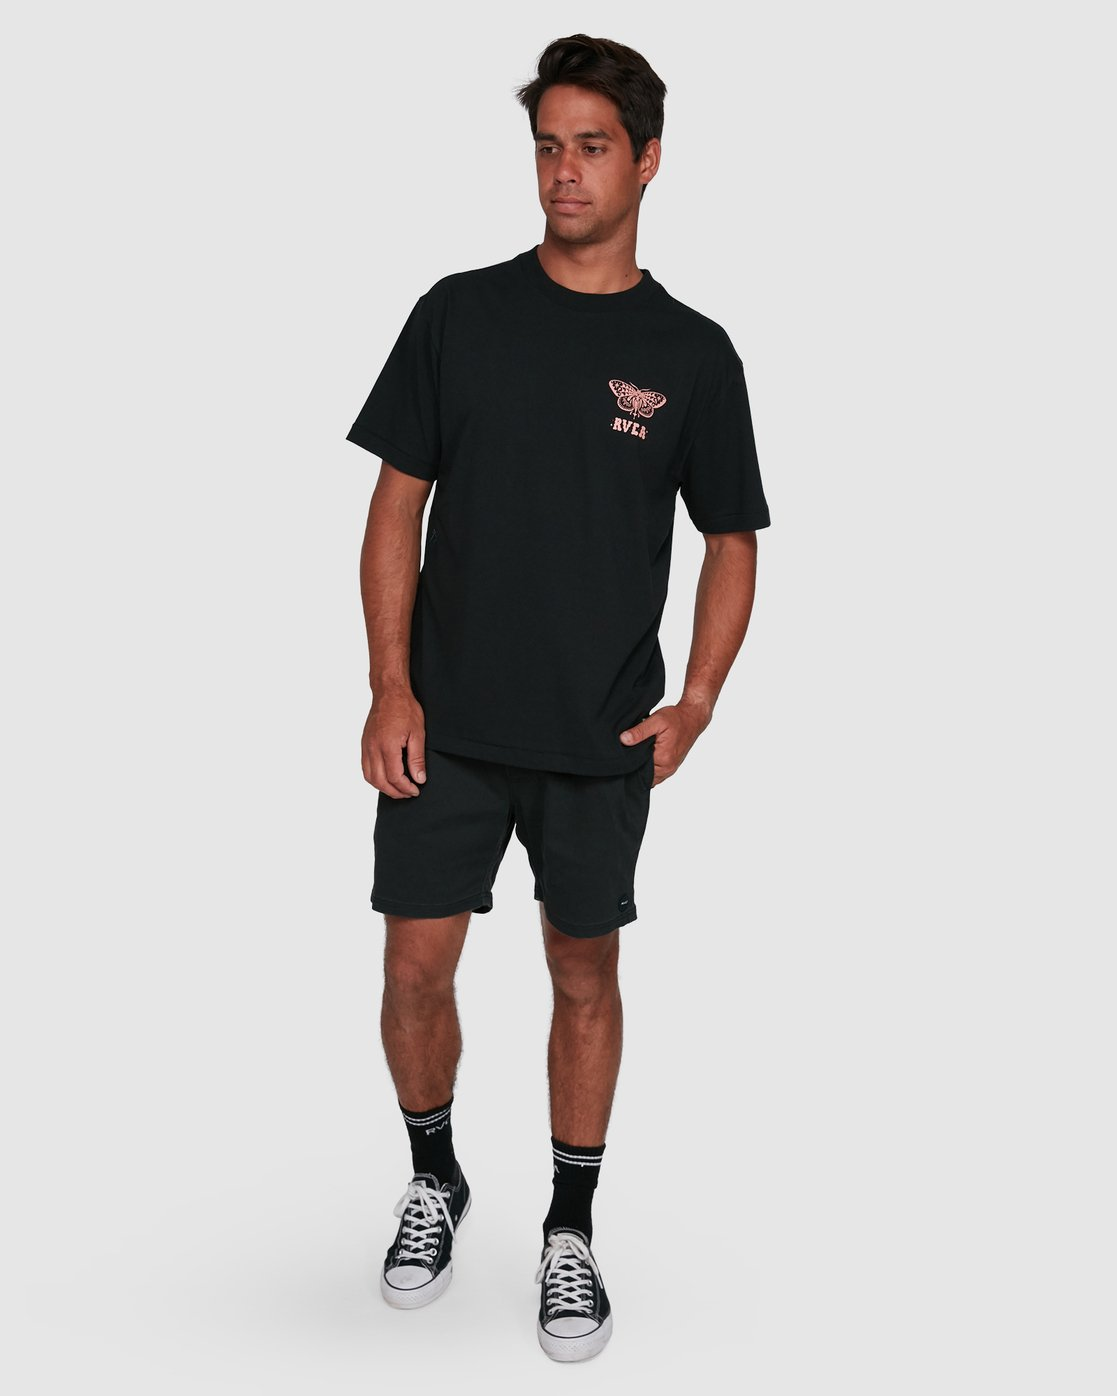 6 FAUNA SHORT SLEEVE TEE Black R105068 RVCA